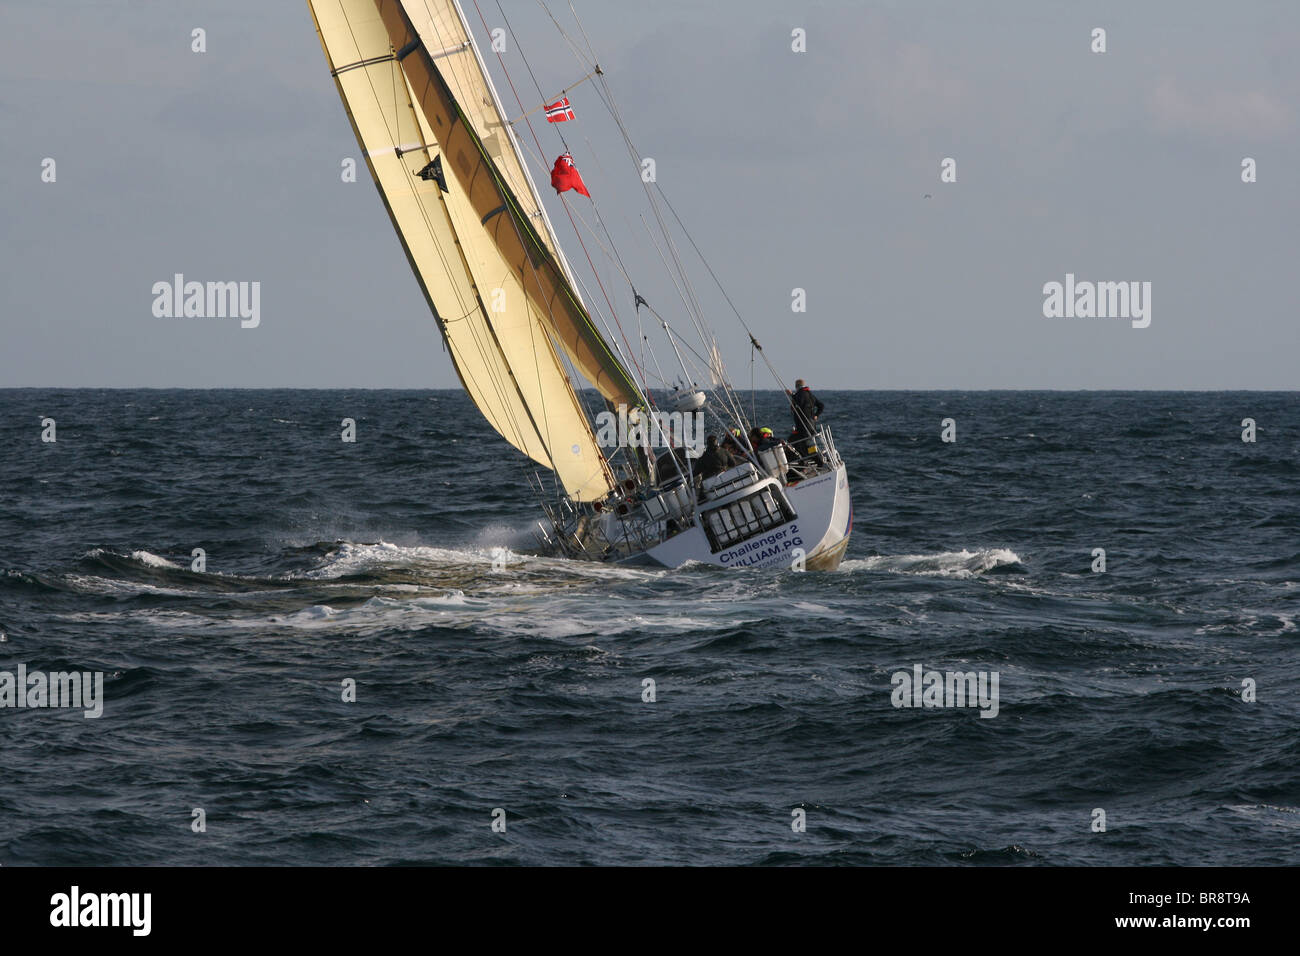 Challenger, The Tall Ships Races 2010, Kristiansand - Stock Image